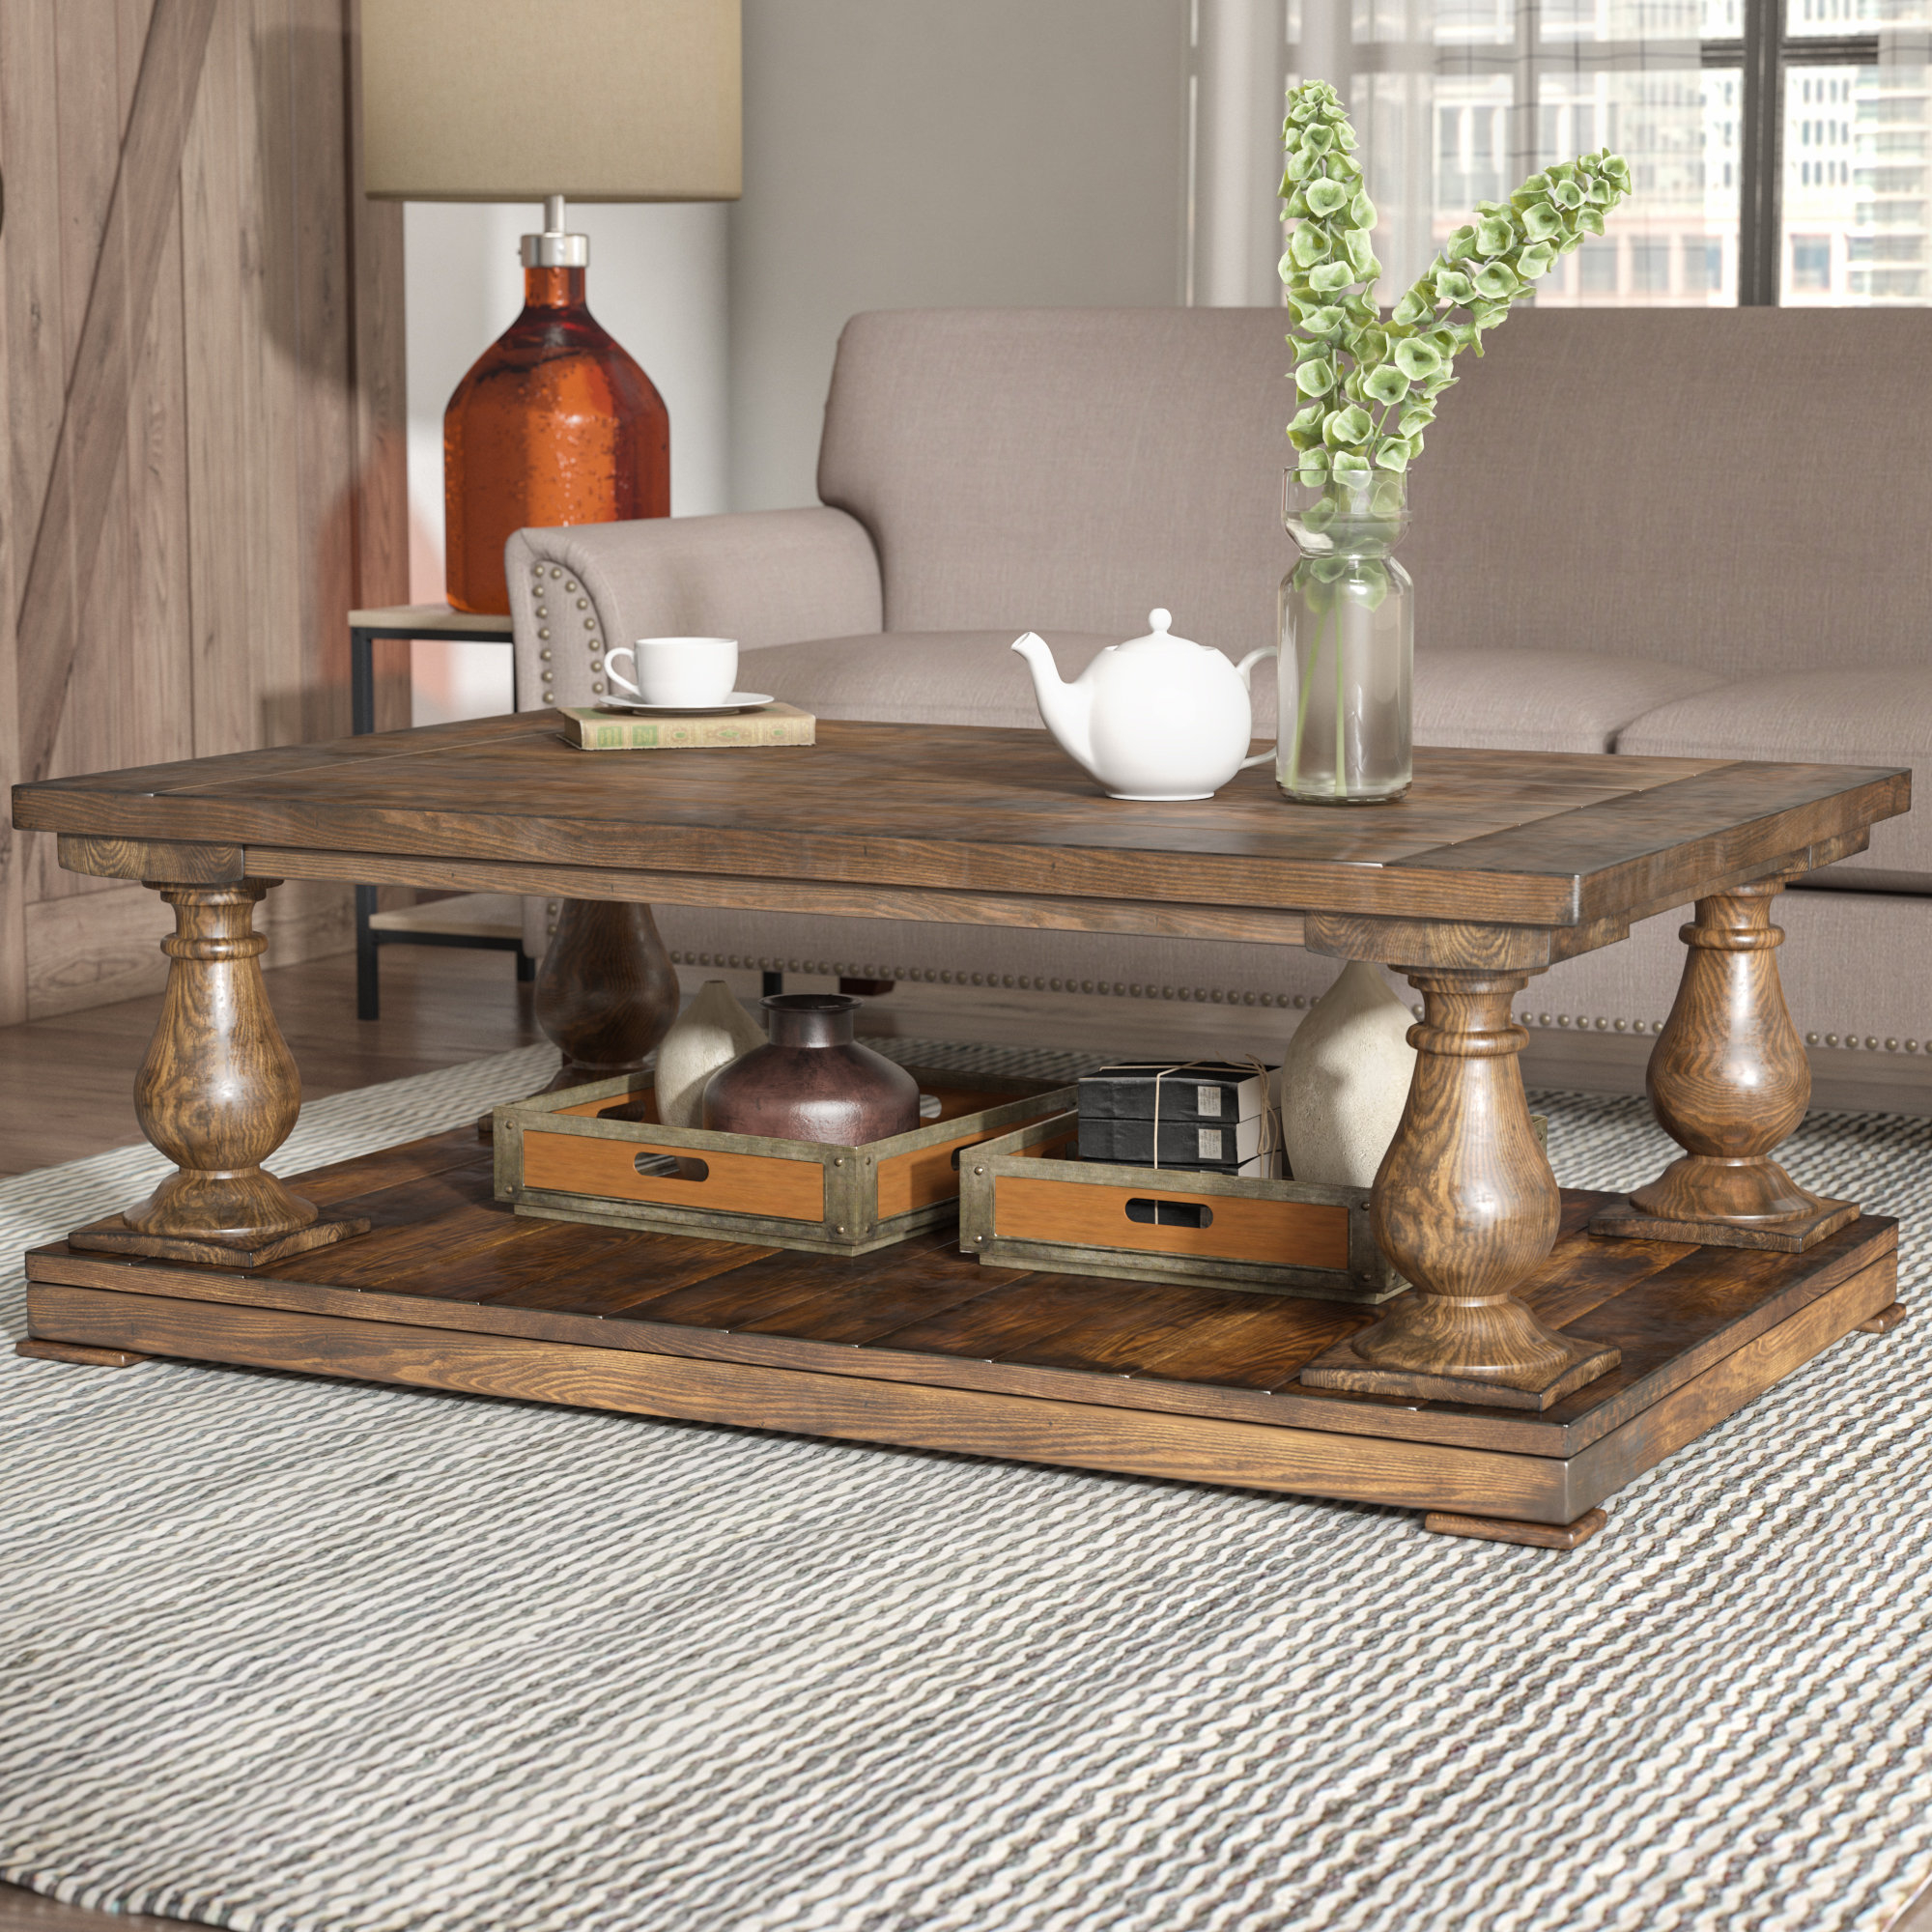 Wayfair Laurel Foundry Modern Farmhouse Gladiola Coffee Table within dimensions 2000 X 2000